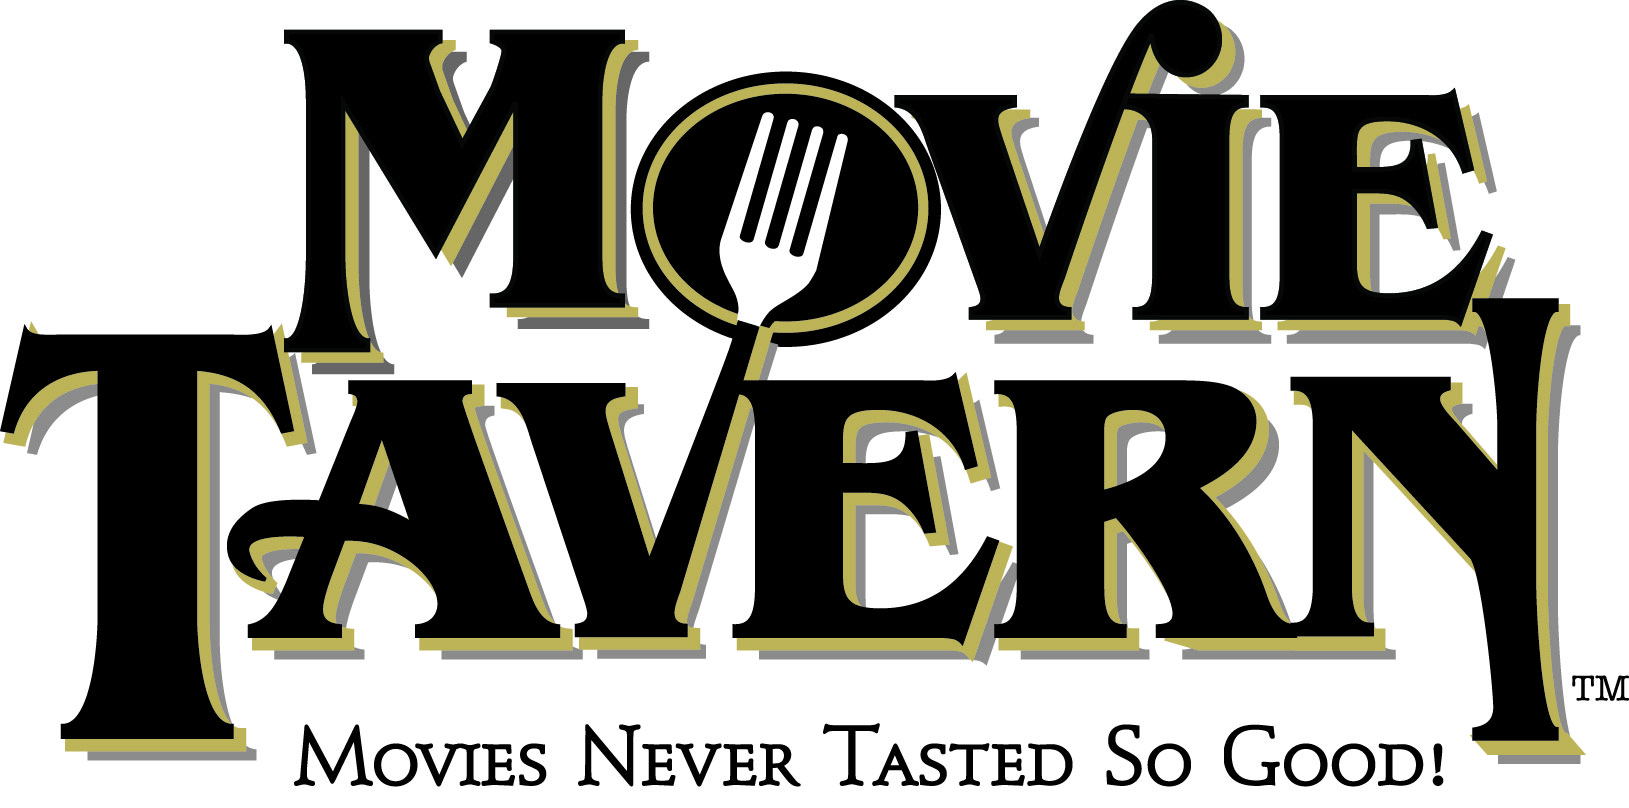 Movietavern-logo